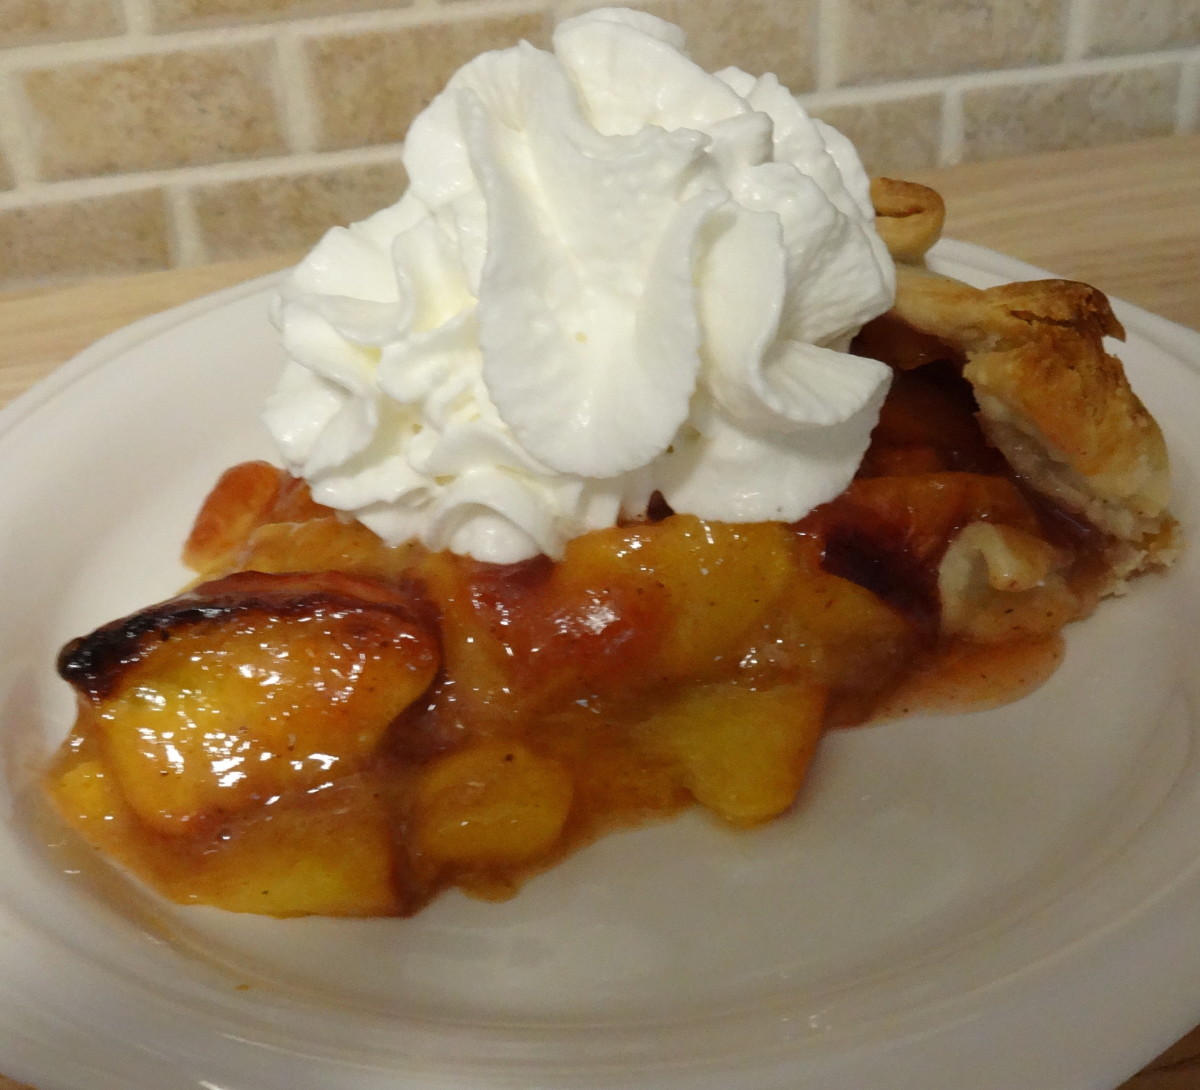 How to Make a Peachy Nectarine Galette